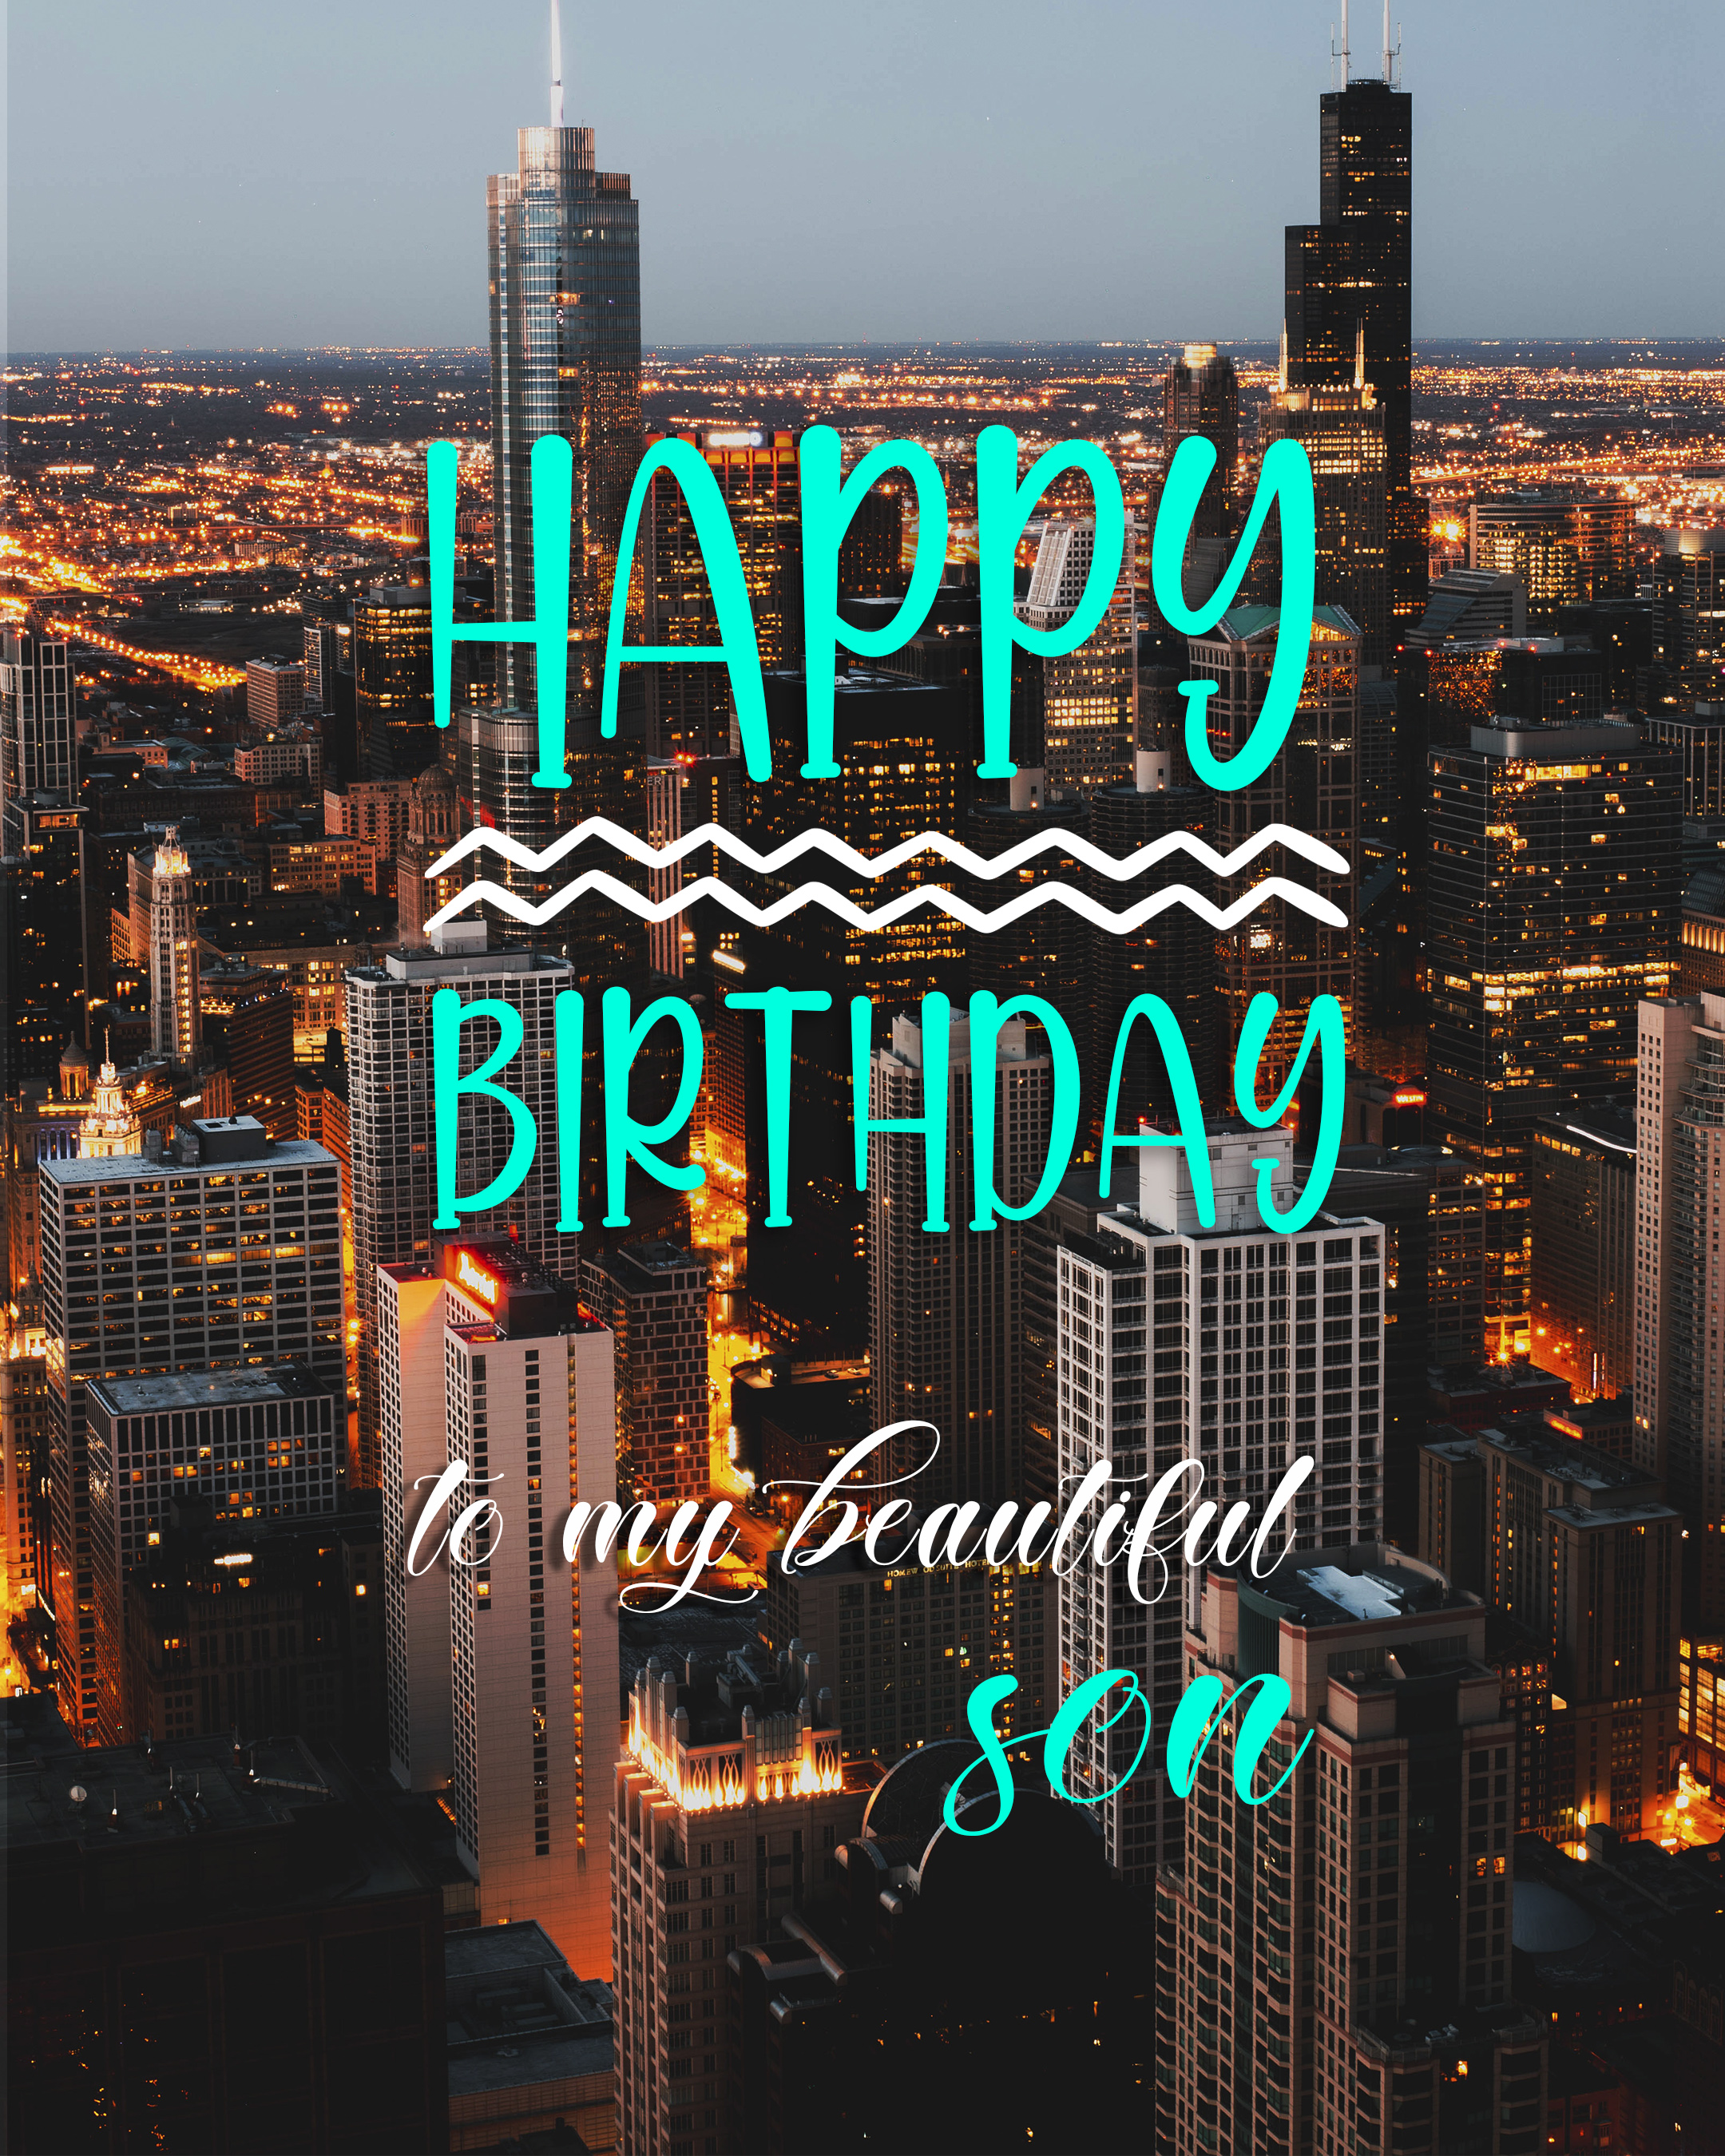 Free Happy Birthday Image For Son With City Background - birthdayimg.com